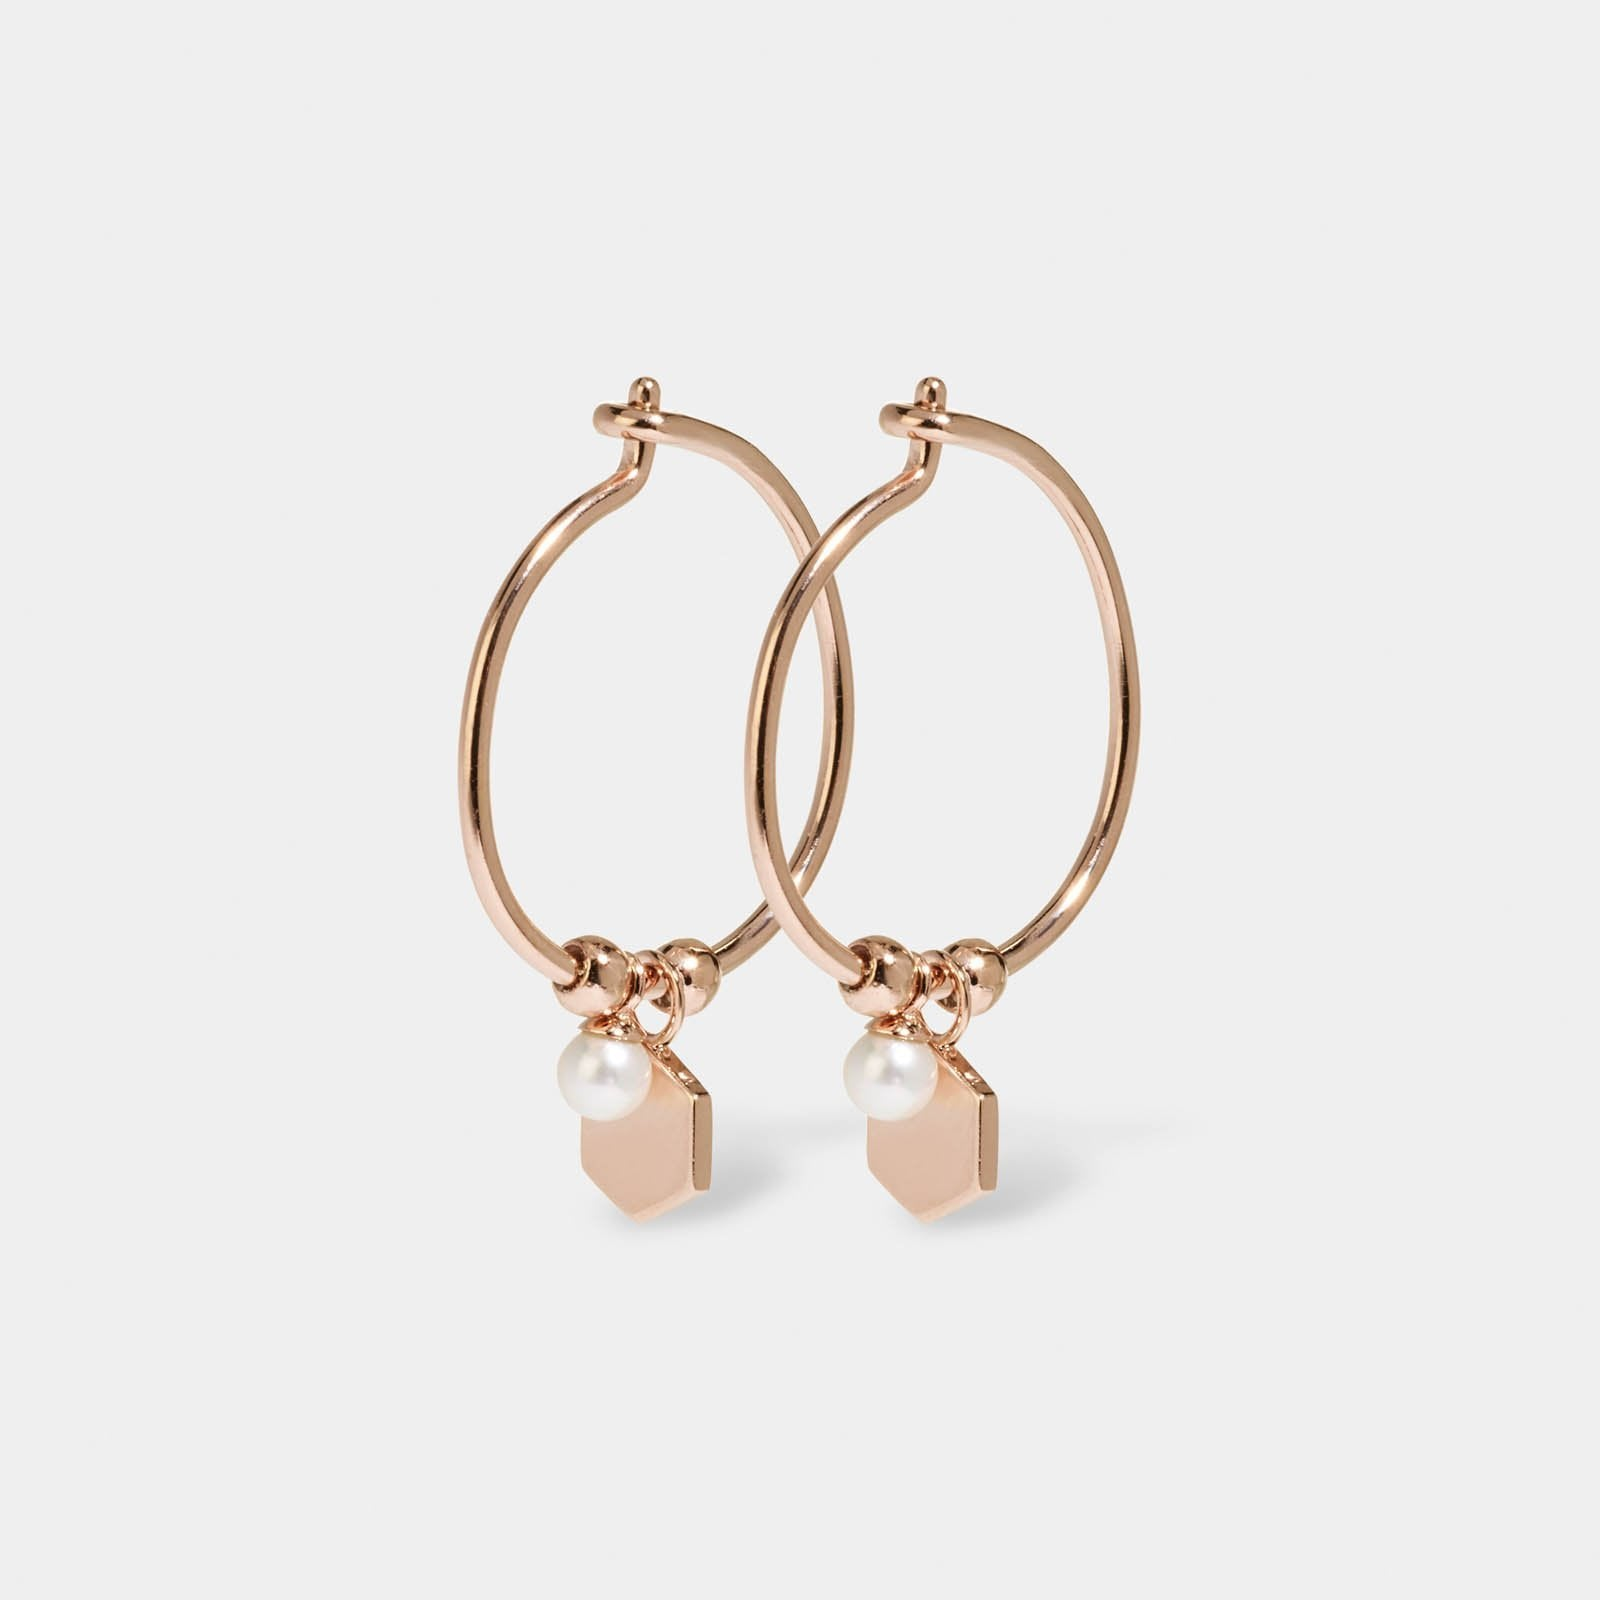 CLUSE Essentielle Rose Gold Hexagon and Pearl Charm Hoop Earrings CLJ50002 - Boucles d'oreilles